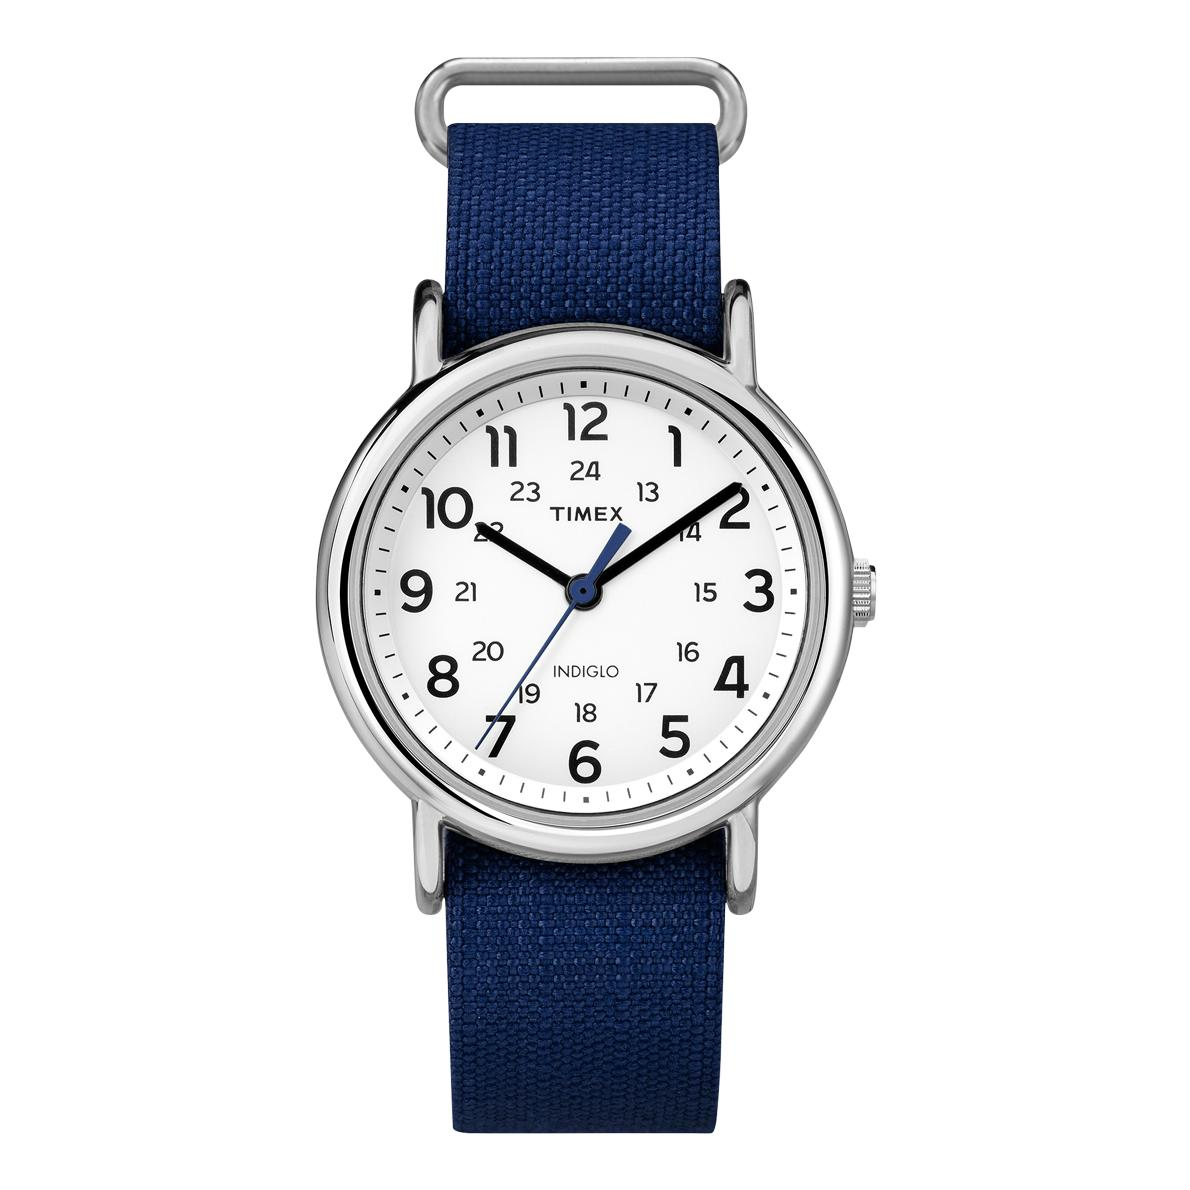 """<p>Here's a smart watch that's intended for men and women, and works with casual and professional outfits. Plus, it's available in dozens of strap colors.</p> <p>$28   <a href=""""https://www.amazon.com/Timex-Unisex-TW2P657009J-Weekender-Silver-Tone/dp/B00PUDQI5S?th=1"""" rel=""""nofollow noopener"""" target=""""_blank"""" data-ylk=""""slk:Amazon"""" class=""""link rapid-noclick-resp"""">Amazon</a></p>"""